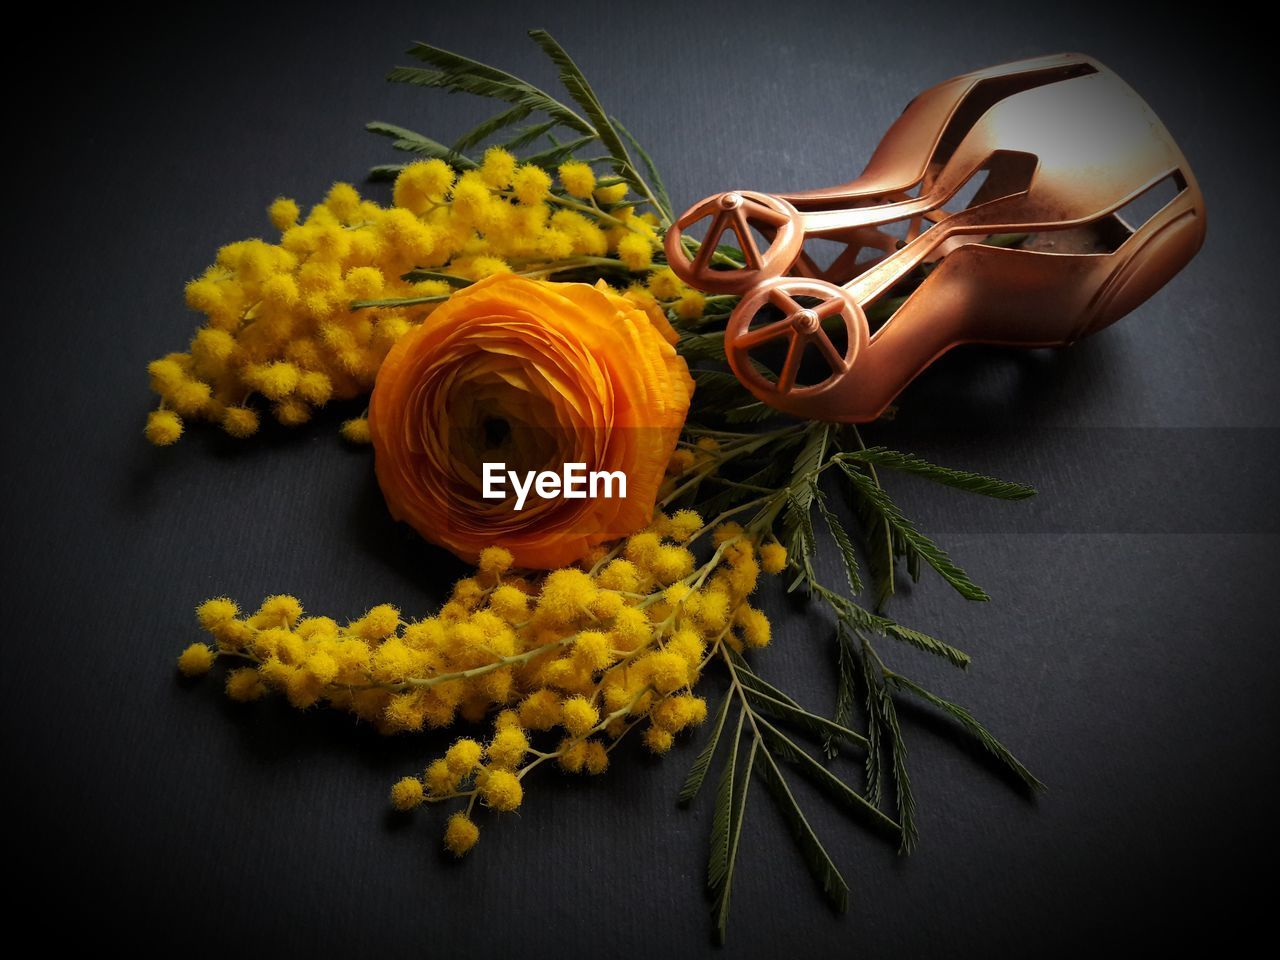 flower, plant, table, indoors, flowering plant, close-up, yellow, freshness, still life, nature, beauty in nature, art and craft, petal, no people, high angle view, craft, flower head, orange color, creativity, vulnerability